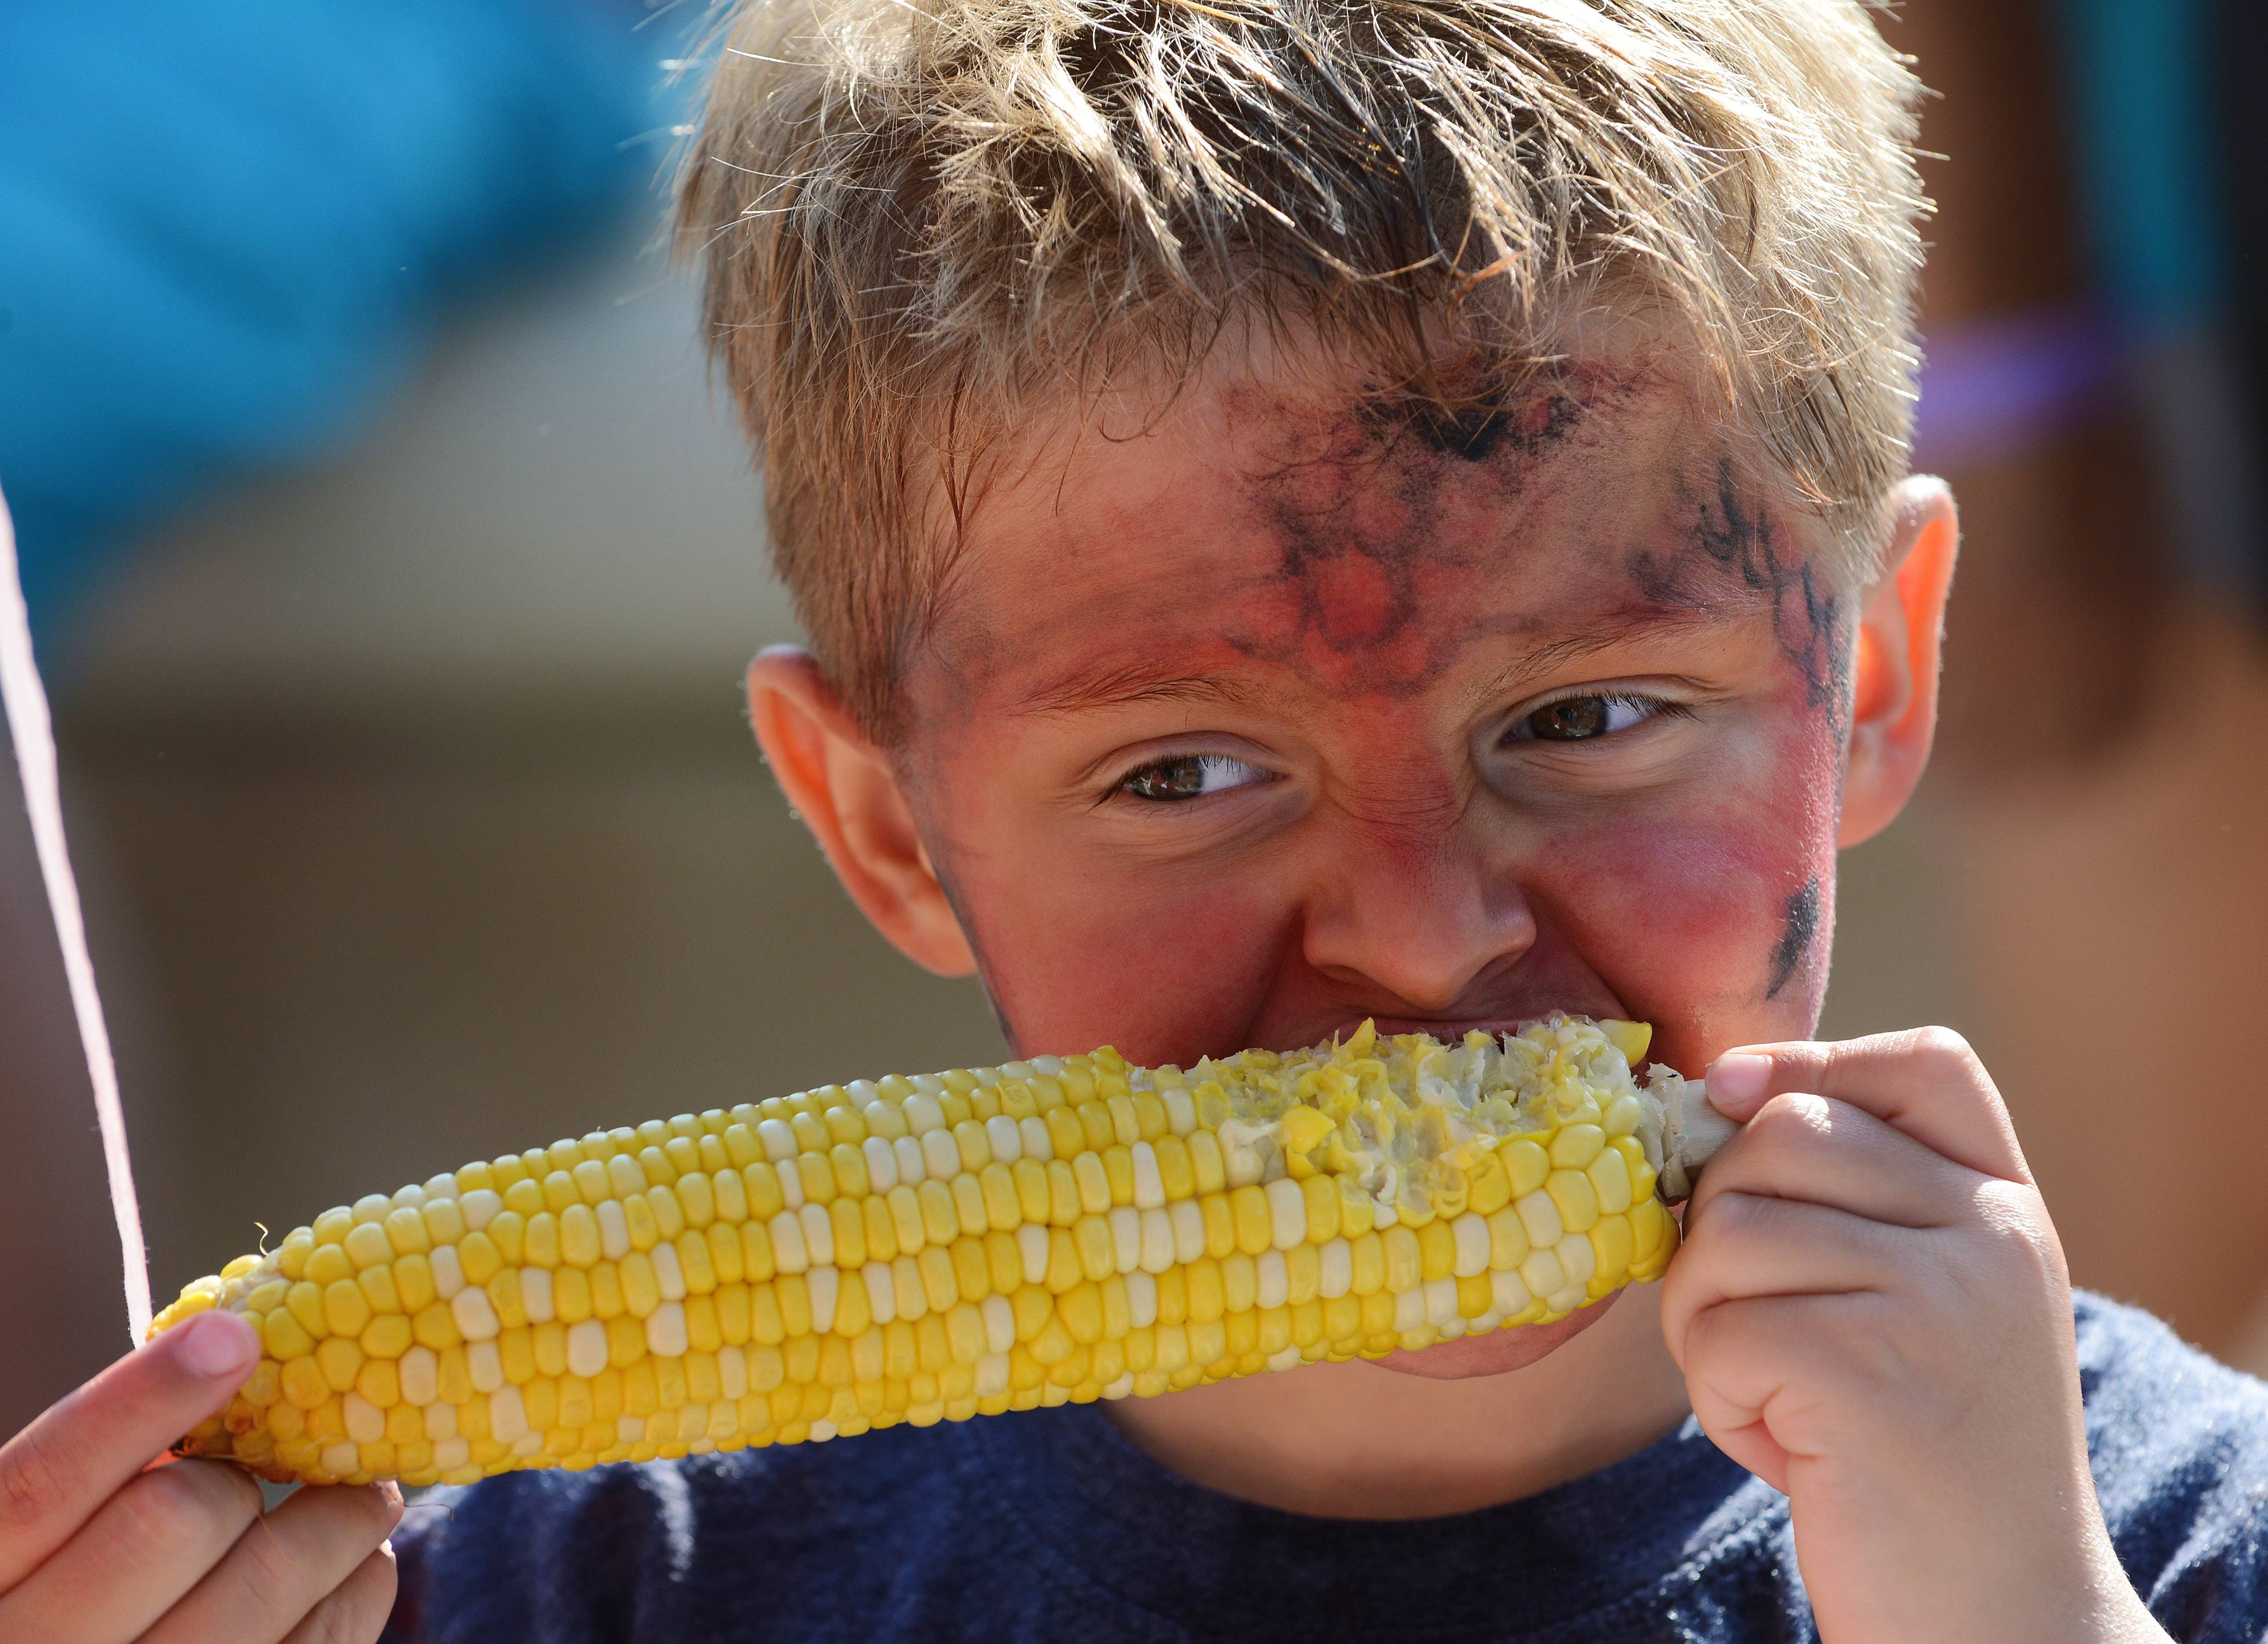 Connor Bever, 5, of Arlington Heights digs into an ear of corn at the Mane event in downtown Arlington Heights Saturday.